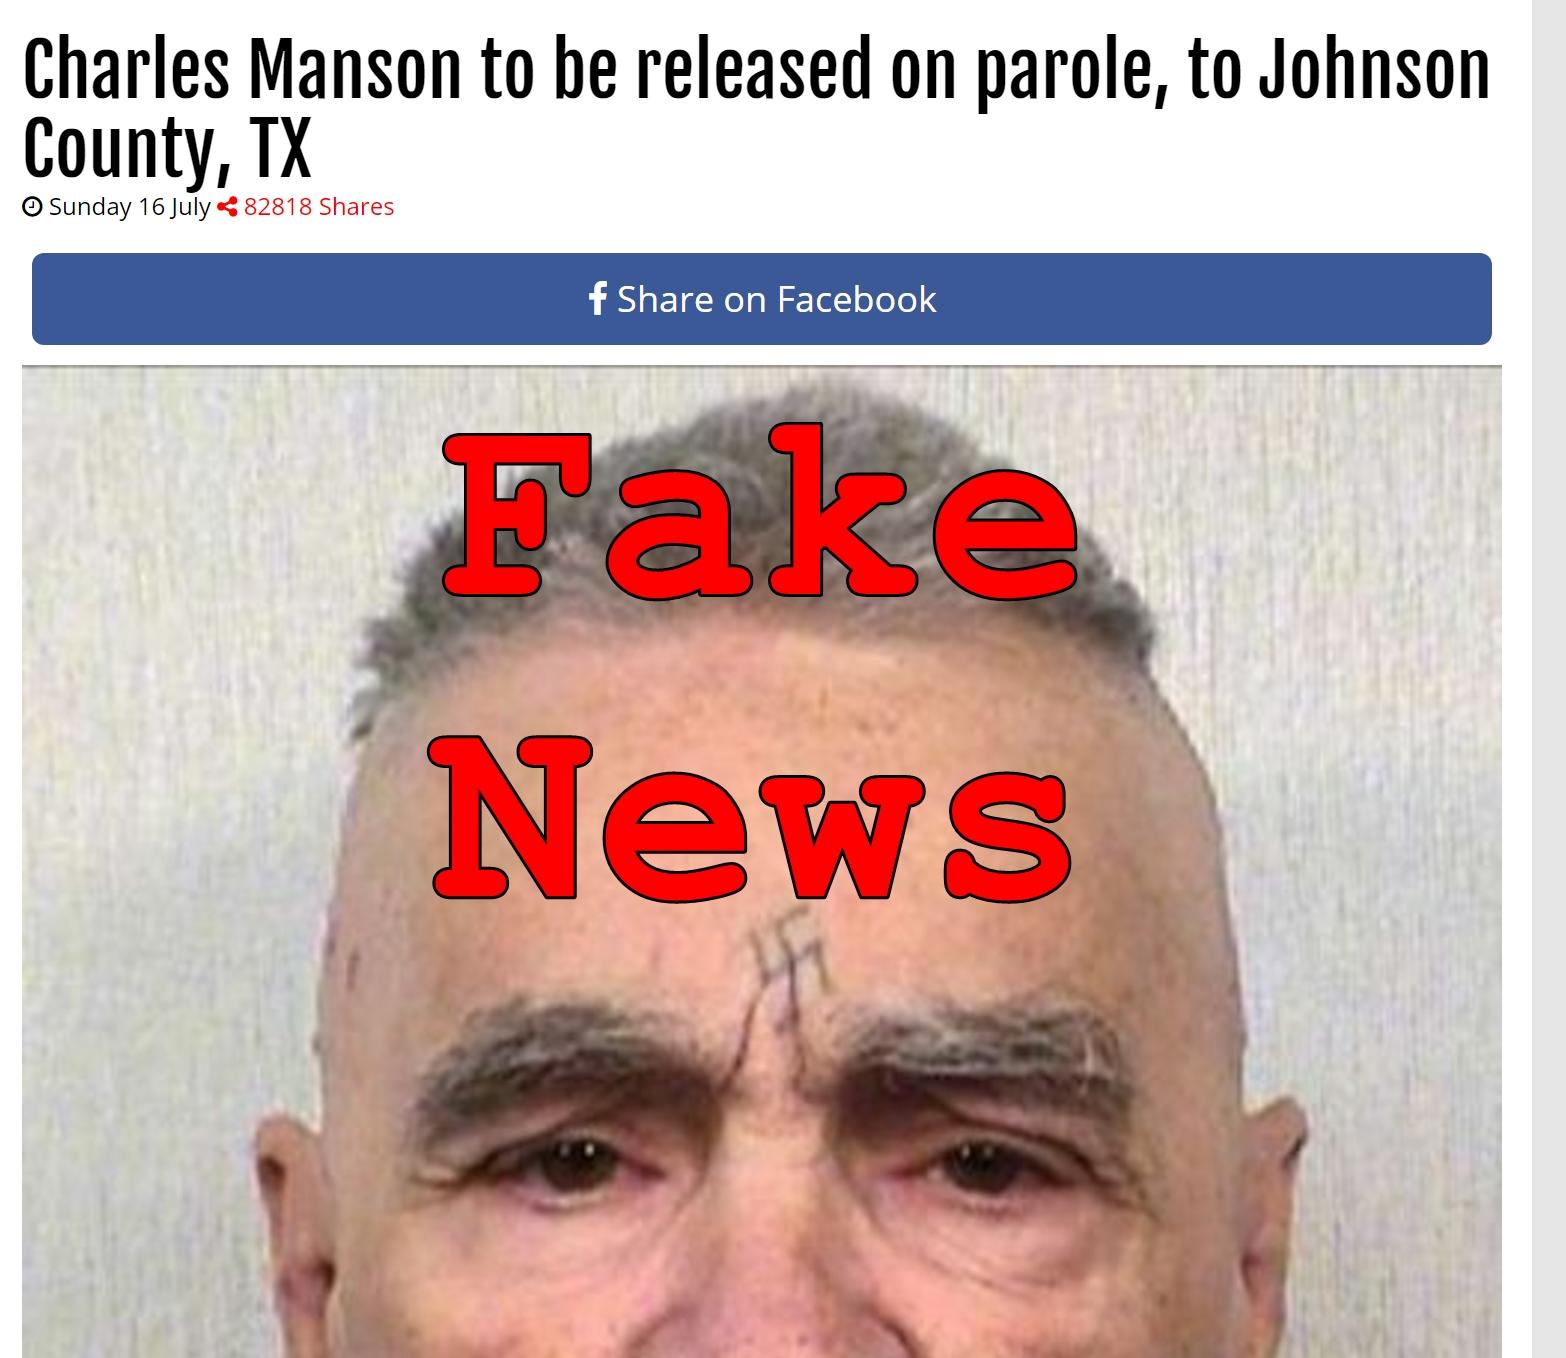 Fake News: Charles Manson NOT To Be Released On Parole To Johnson County TX